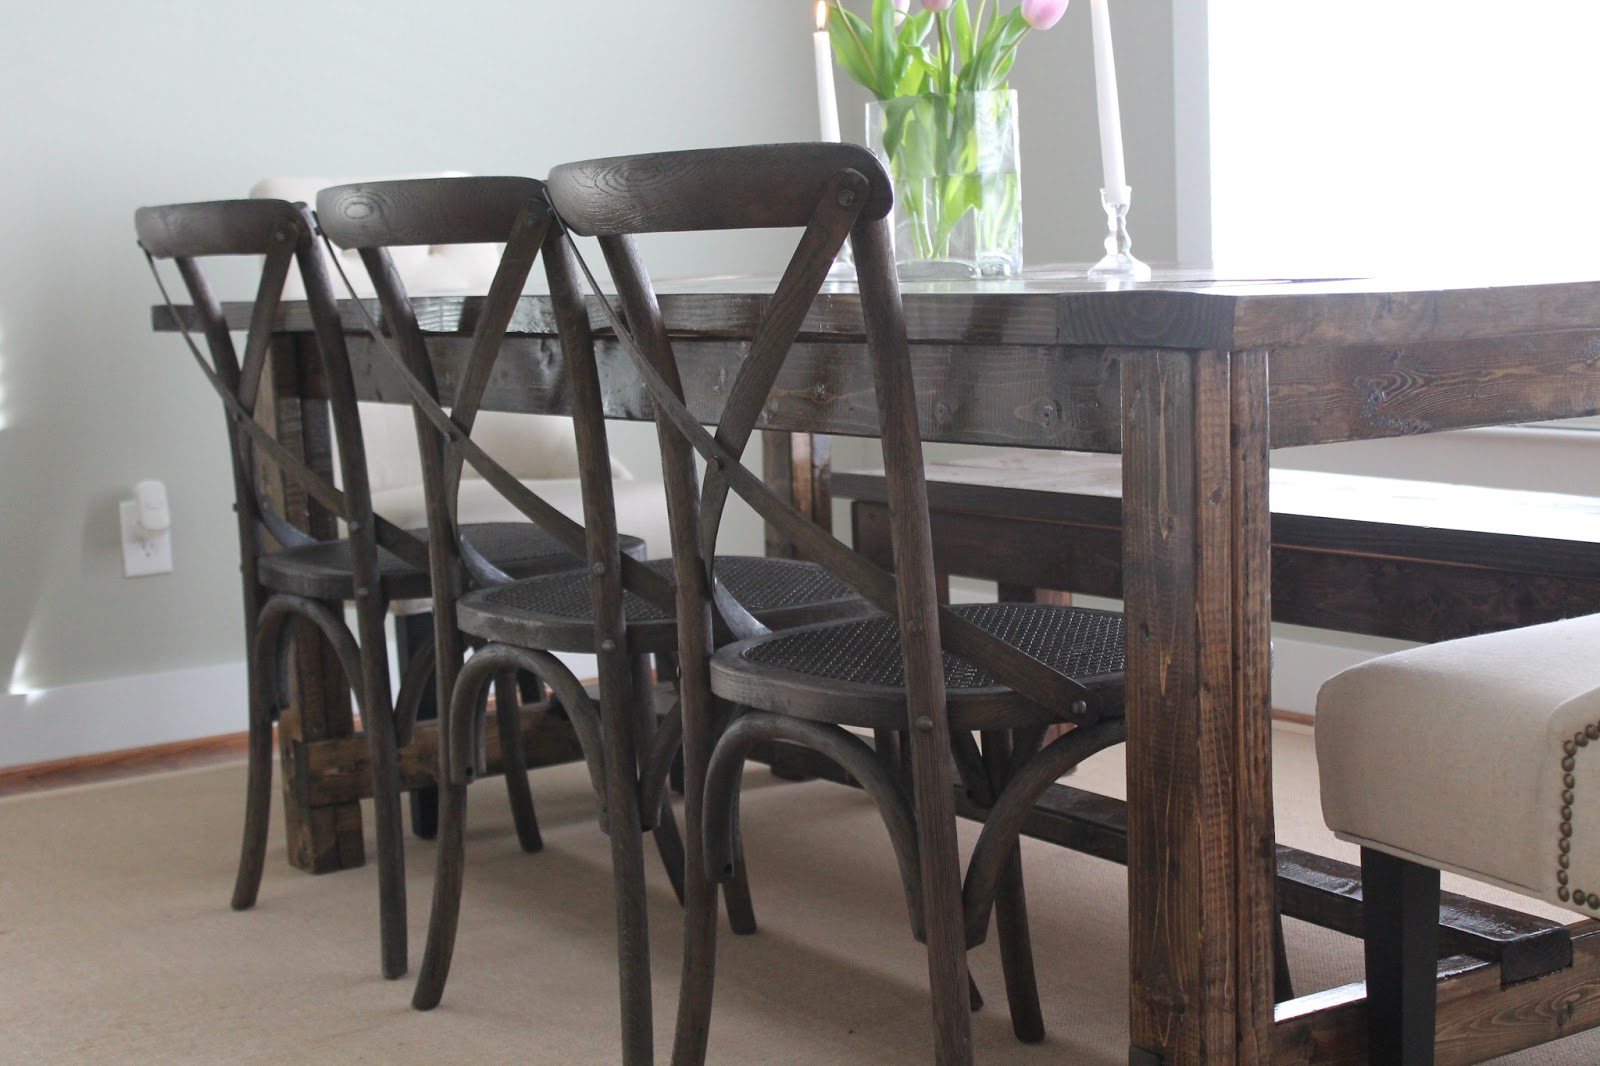 Farmhouse table restoration hardware - It Took Us Months To Find And Agree On The Perfect Chairs And Then We Waited For Them To Go On Sale On One Side We Added 3 Madeleine Side Chairs From